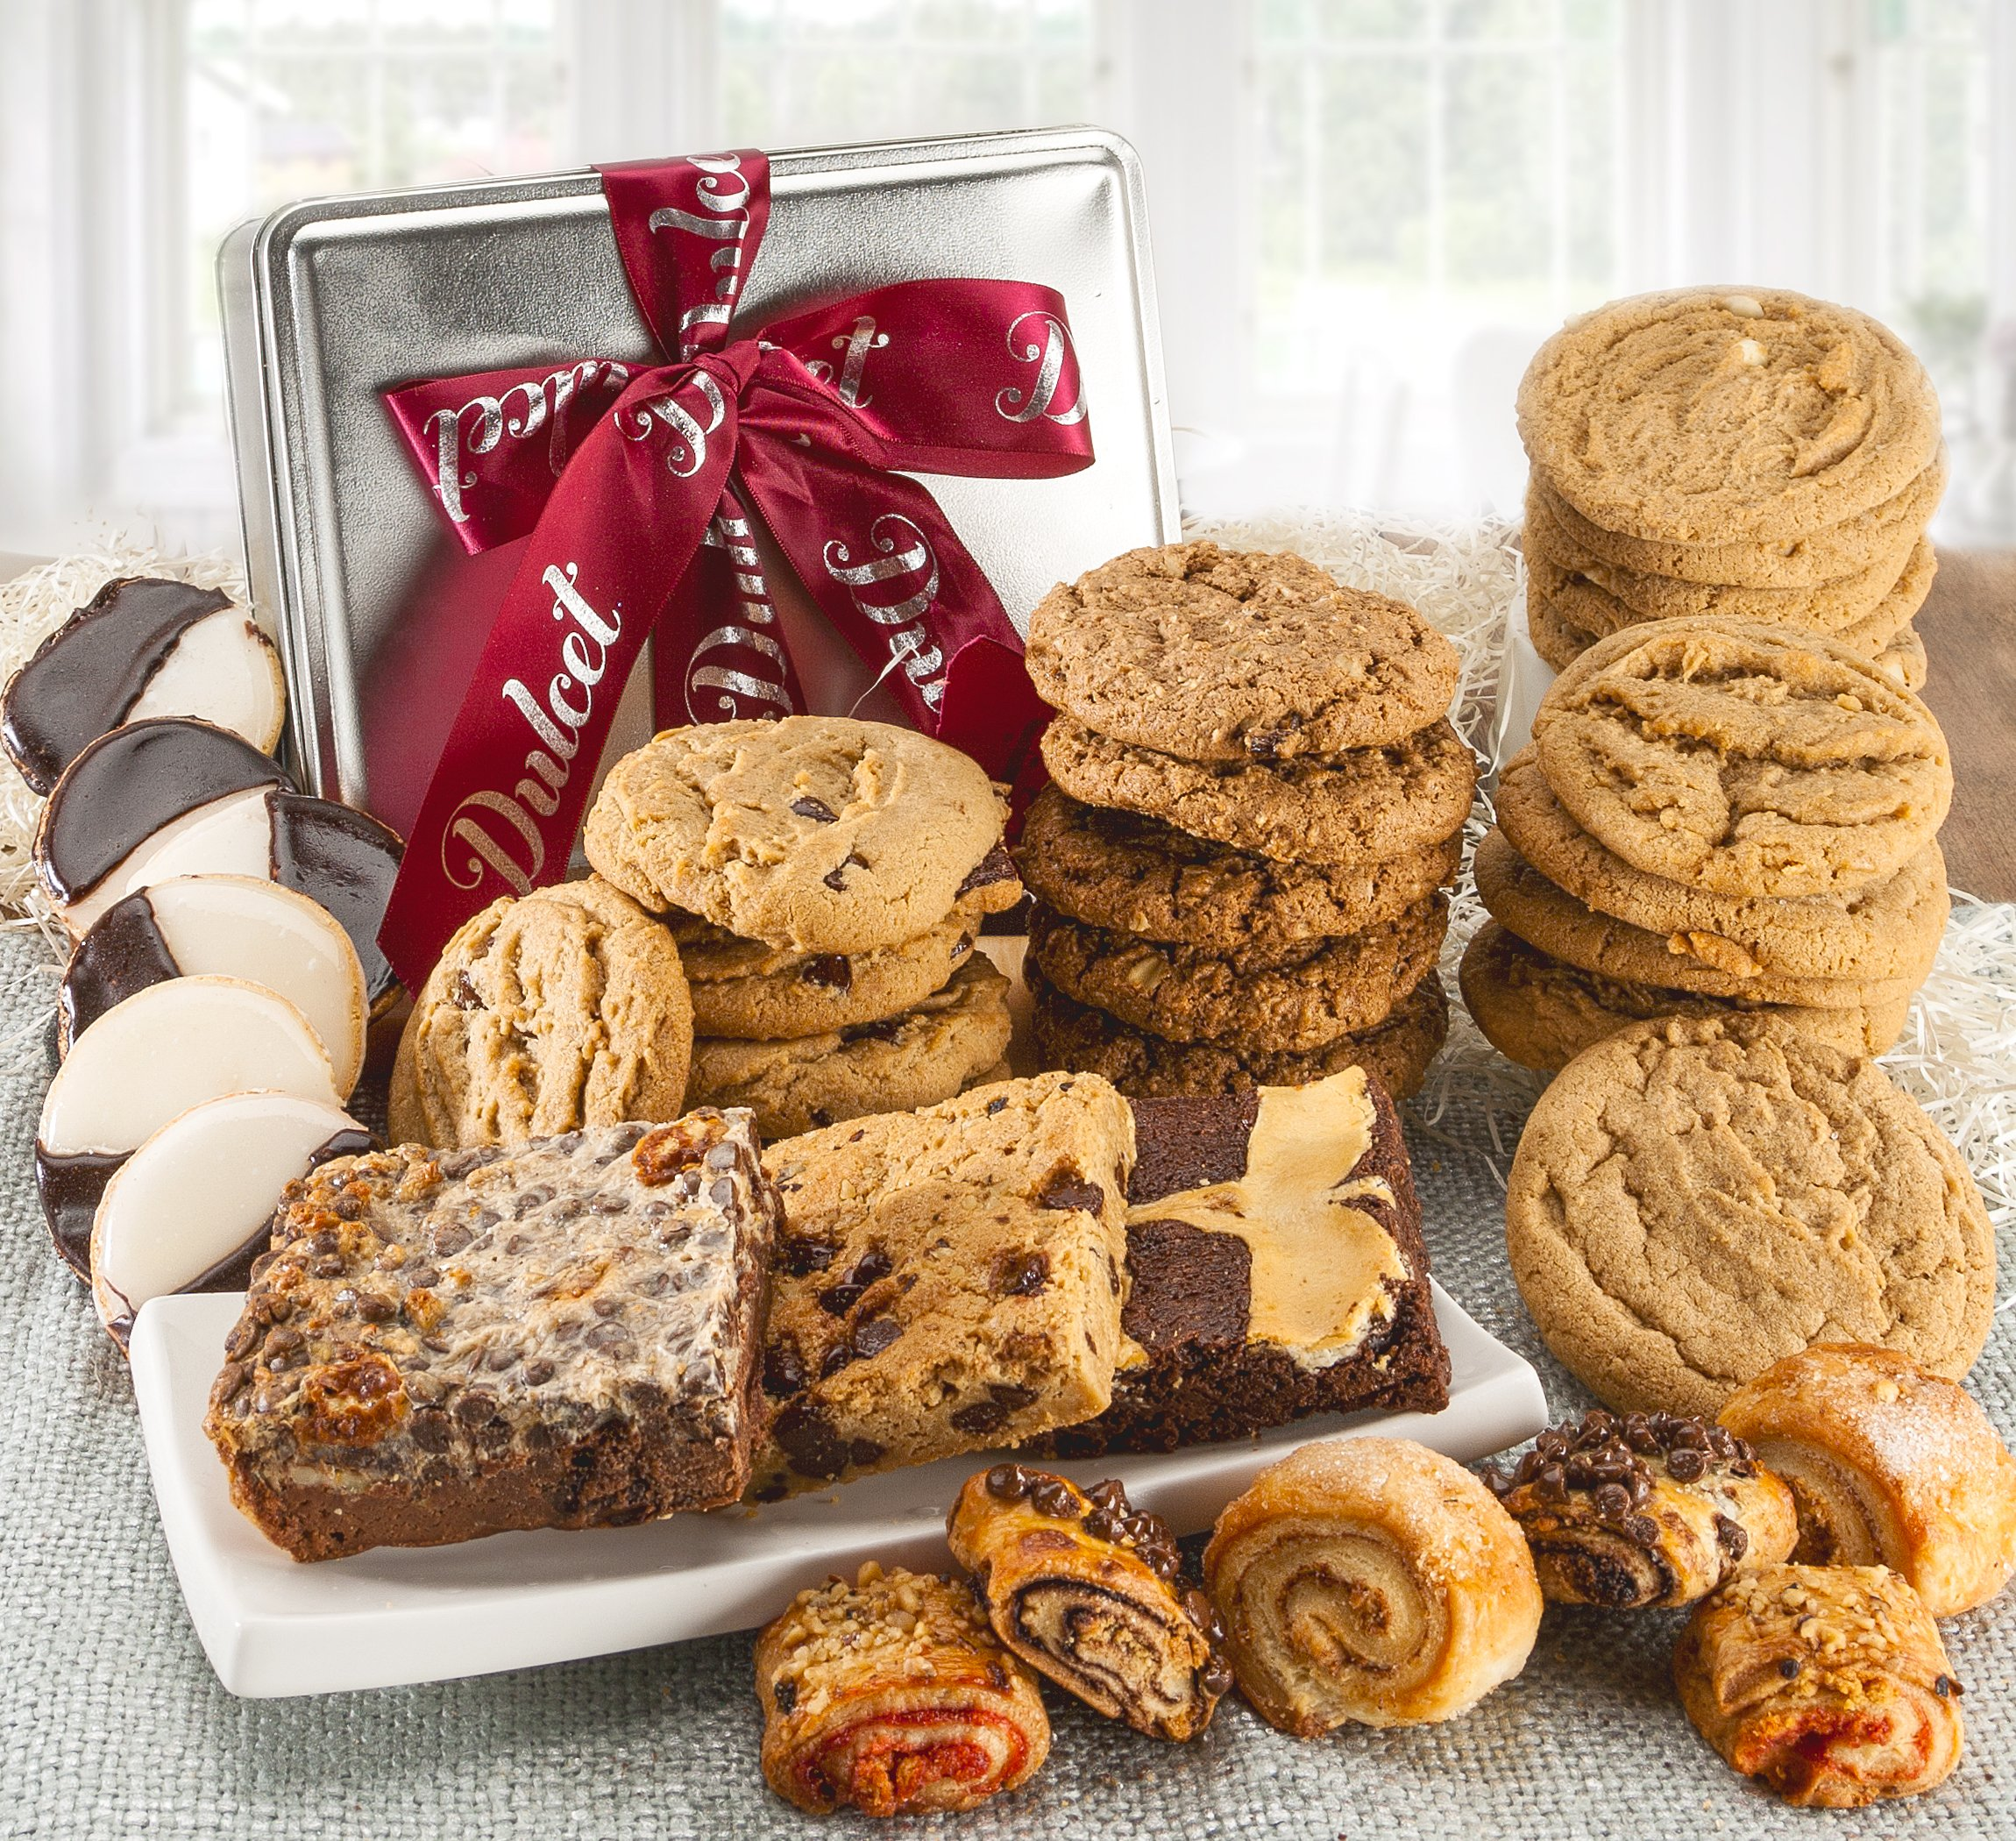 Dulcet Assorted Tin Gift Basket, Best Sellers Includes: Assorted cookies, Cranberry White Chip, Peanut Butter, Oatmeal Raisin, Chocolate Chunk, Black and White, Assorted brownie, Assorted Rugelach